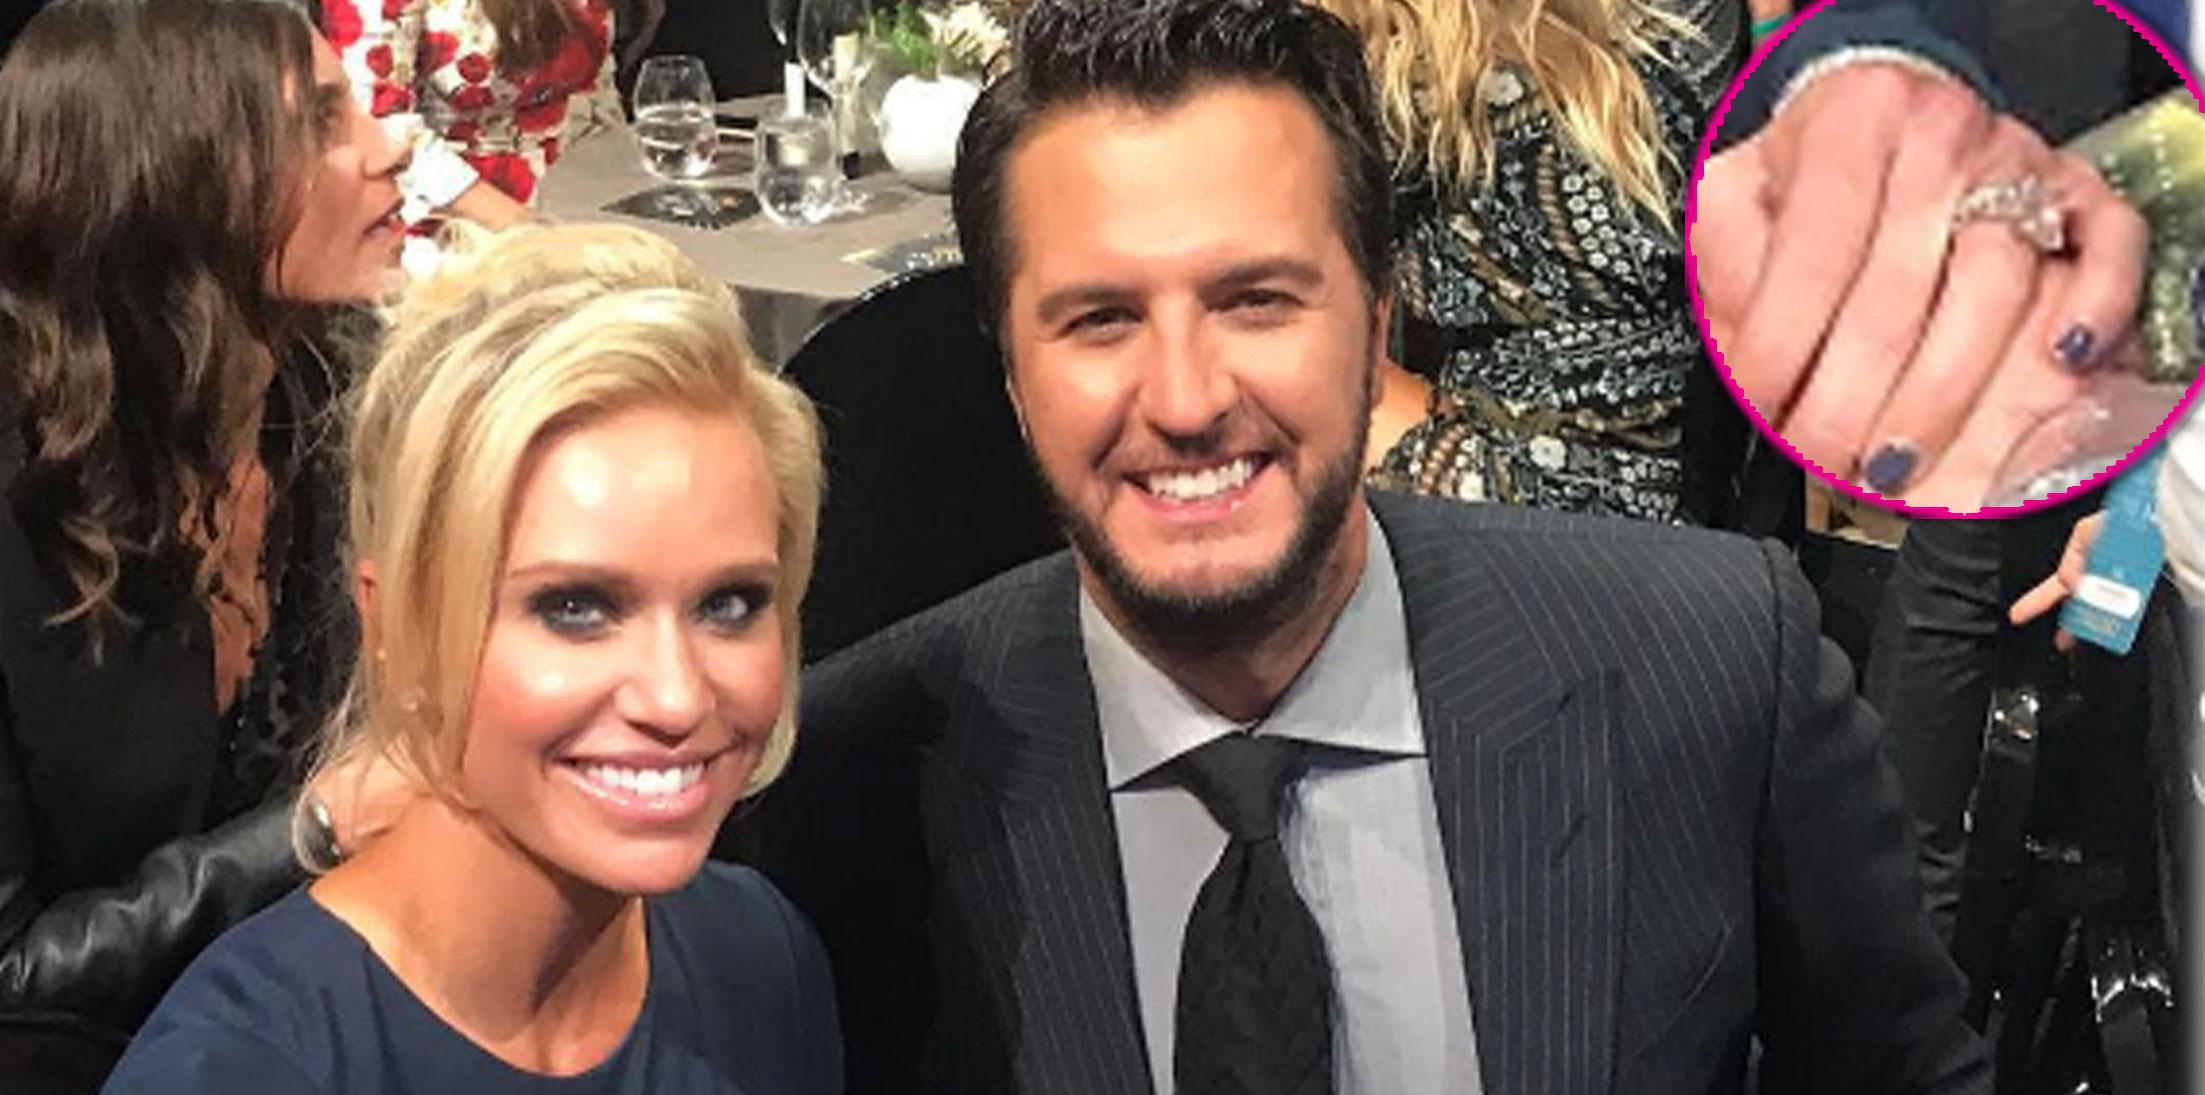 Luke Bryan Wife Diamond Engagement Ring Long